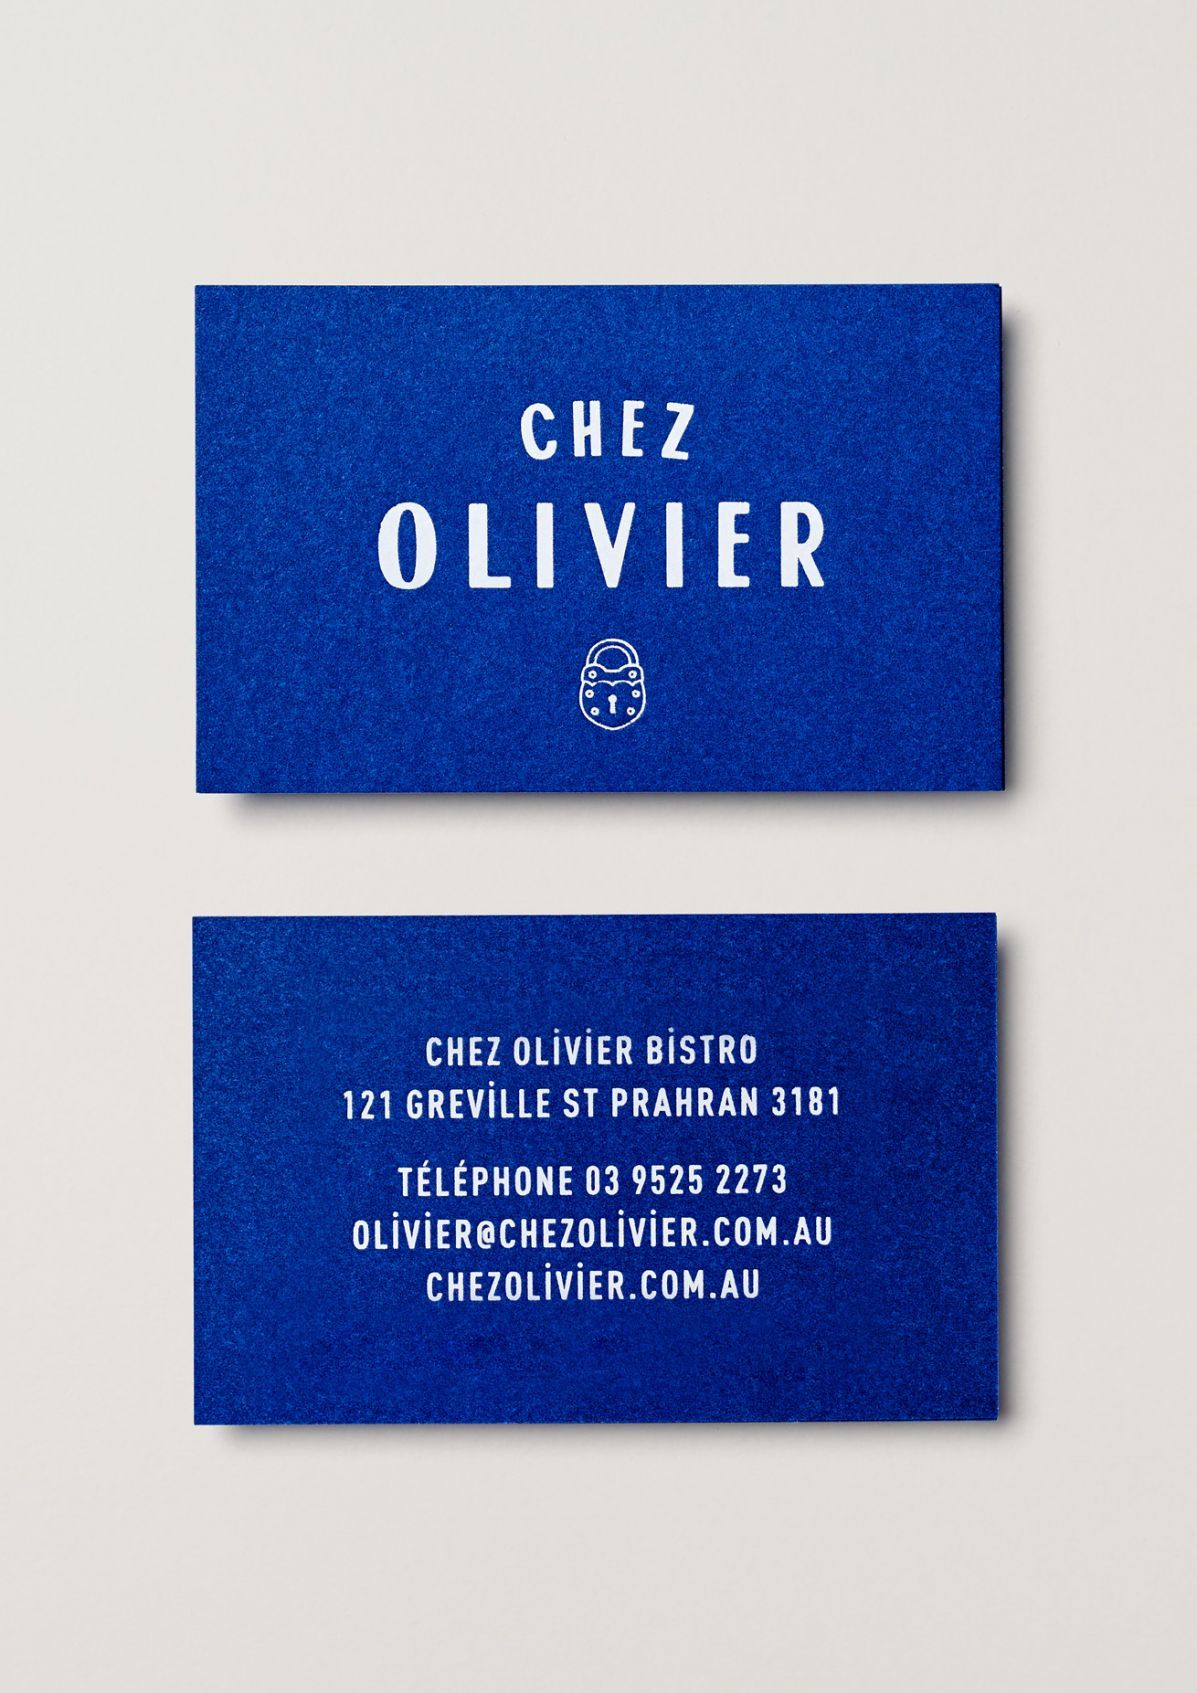 New brand identity for chez olivier by swear words bpo business chez olivier by swear words australia branding businesscards reheart Images